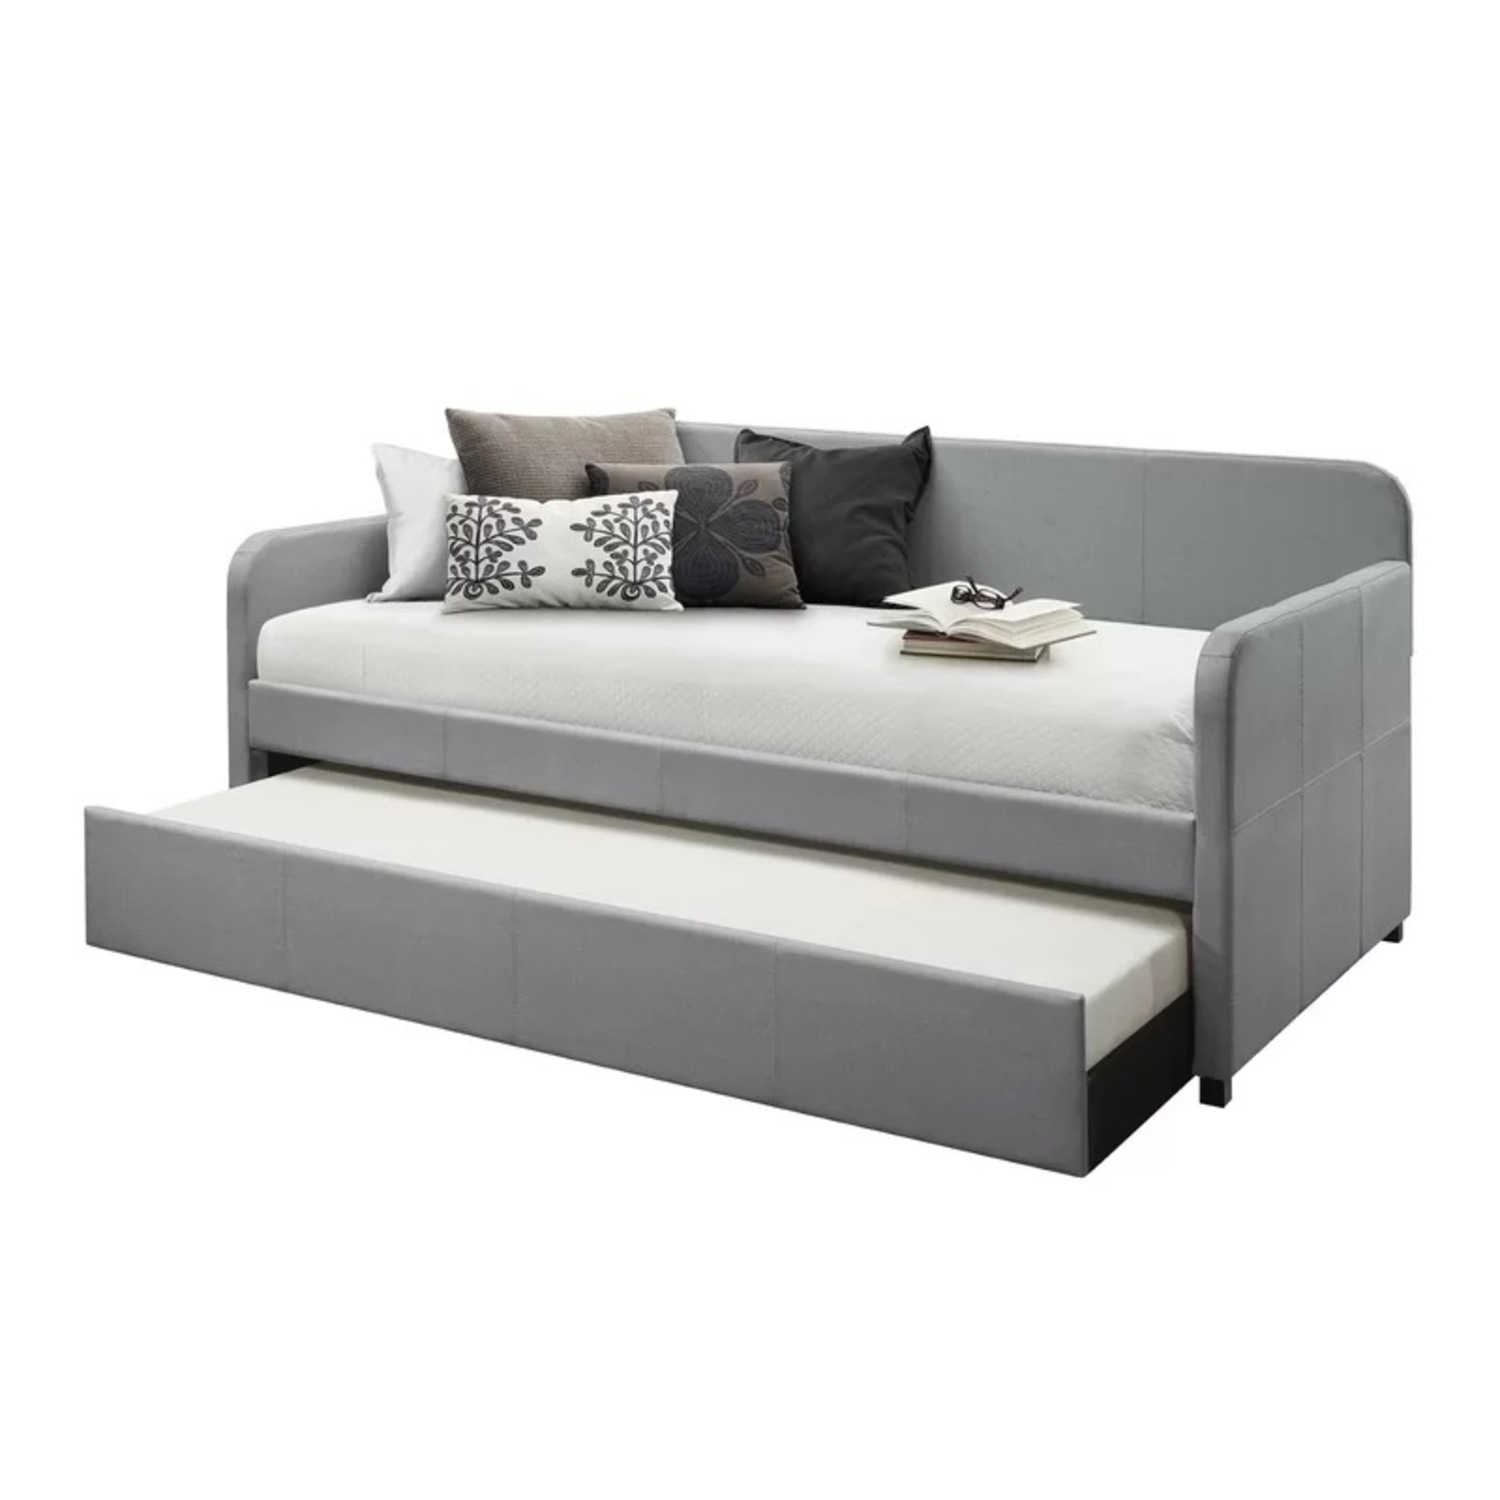 Wayfair Upholstered Long Twin Daybed with Trundle Storage - image-1